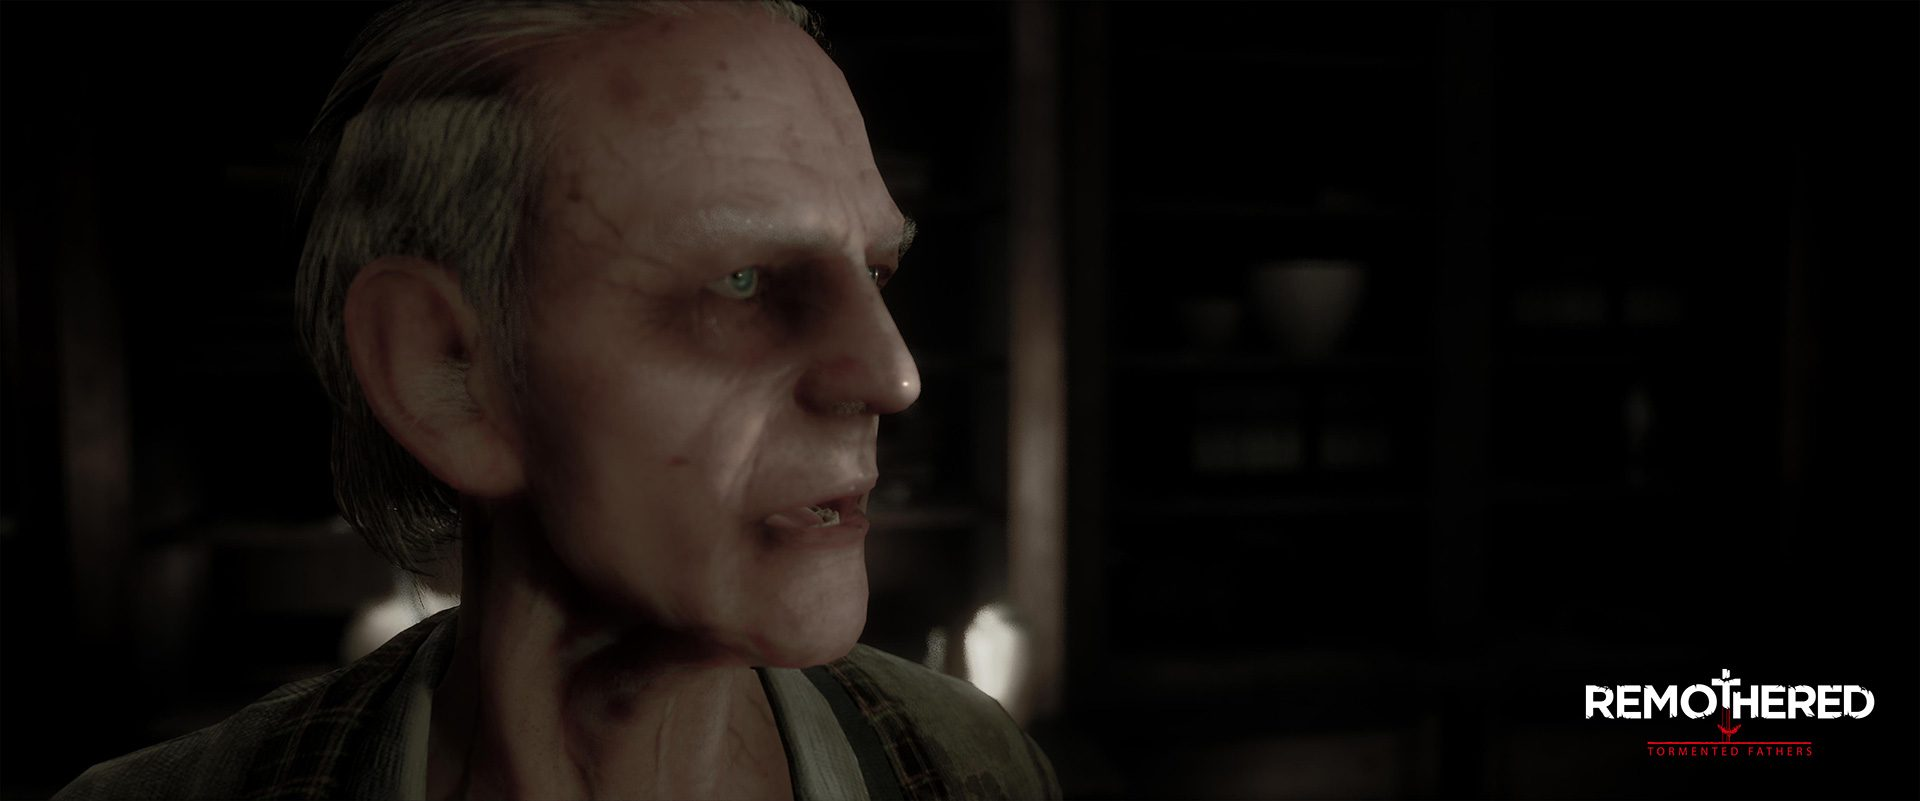 Remothered-Tormented-Fathers-16.jpg